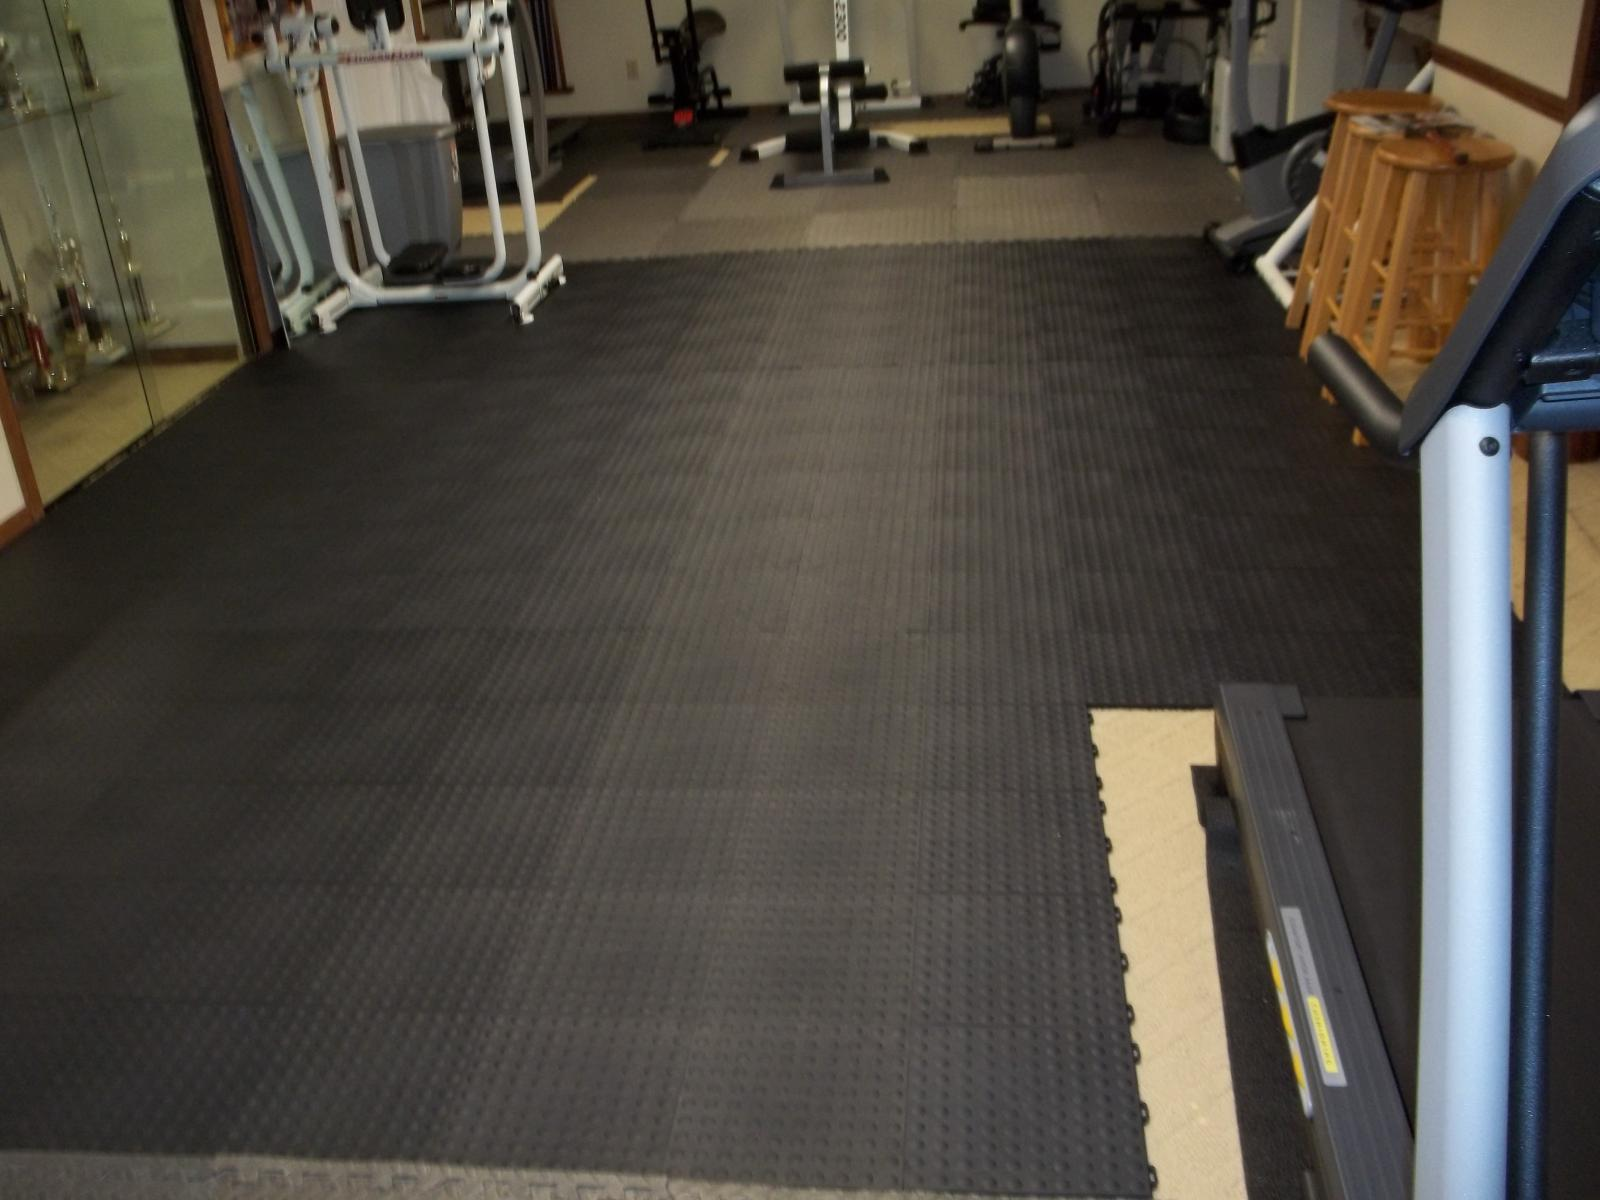 Fatigue Floor Tile Aerobic Staylock Bump Top